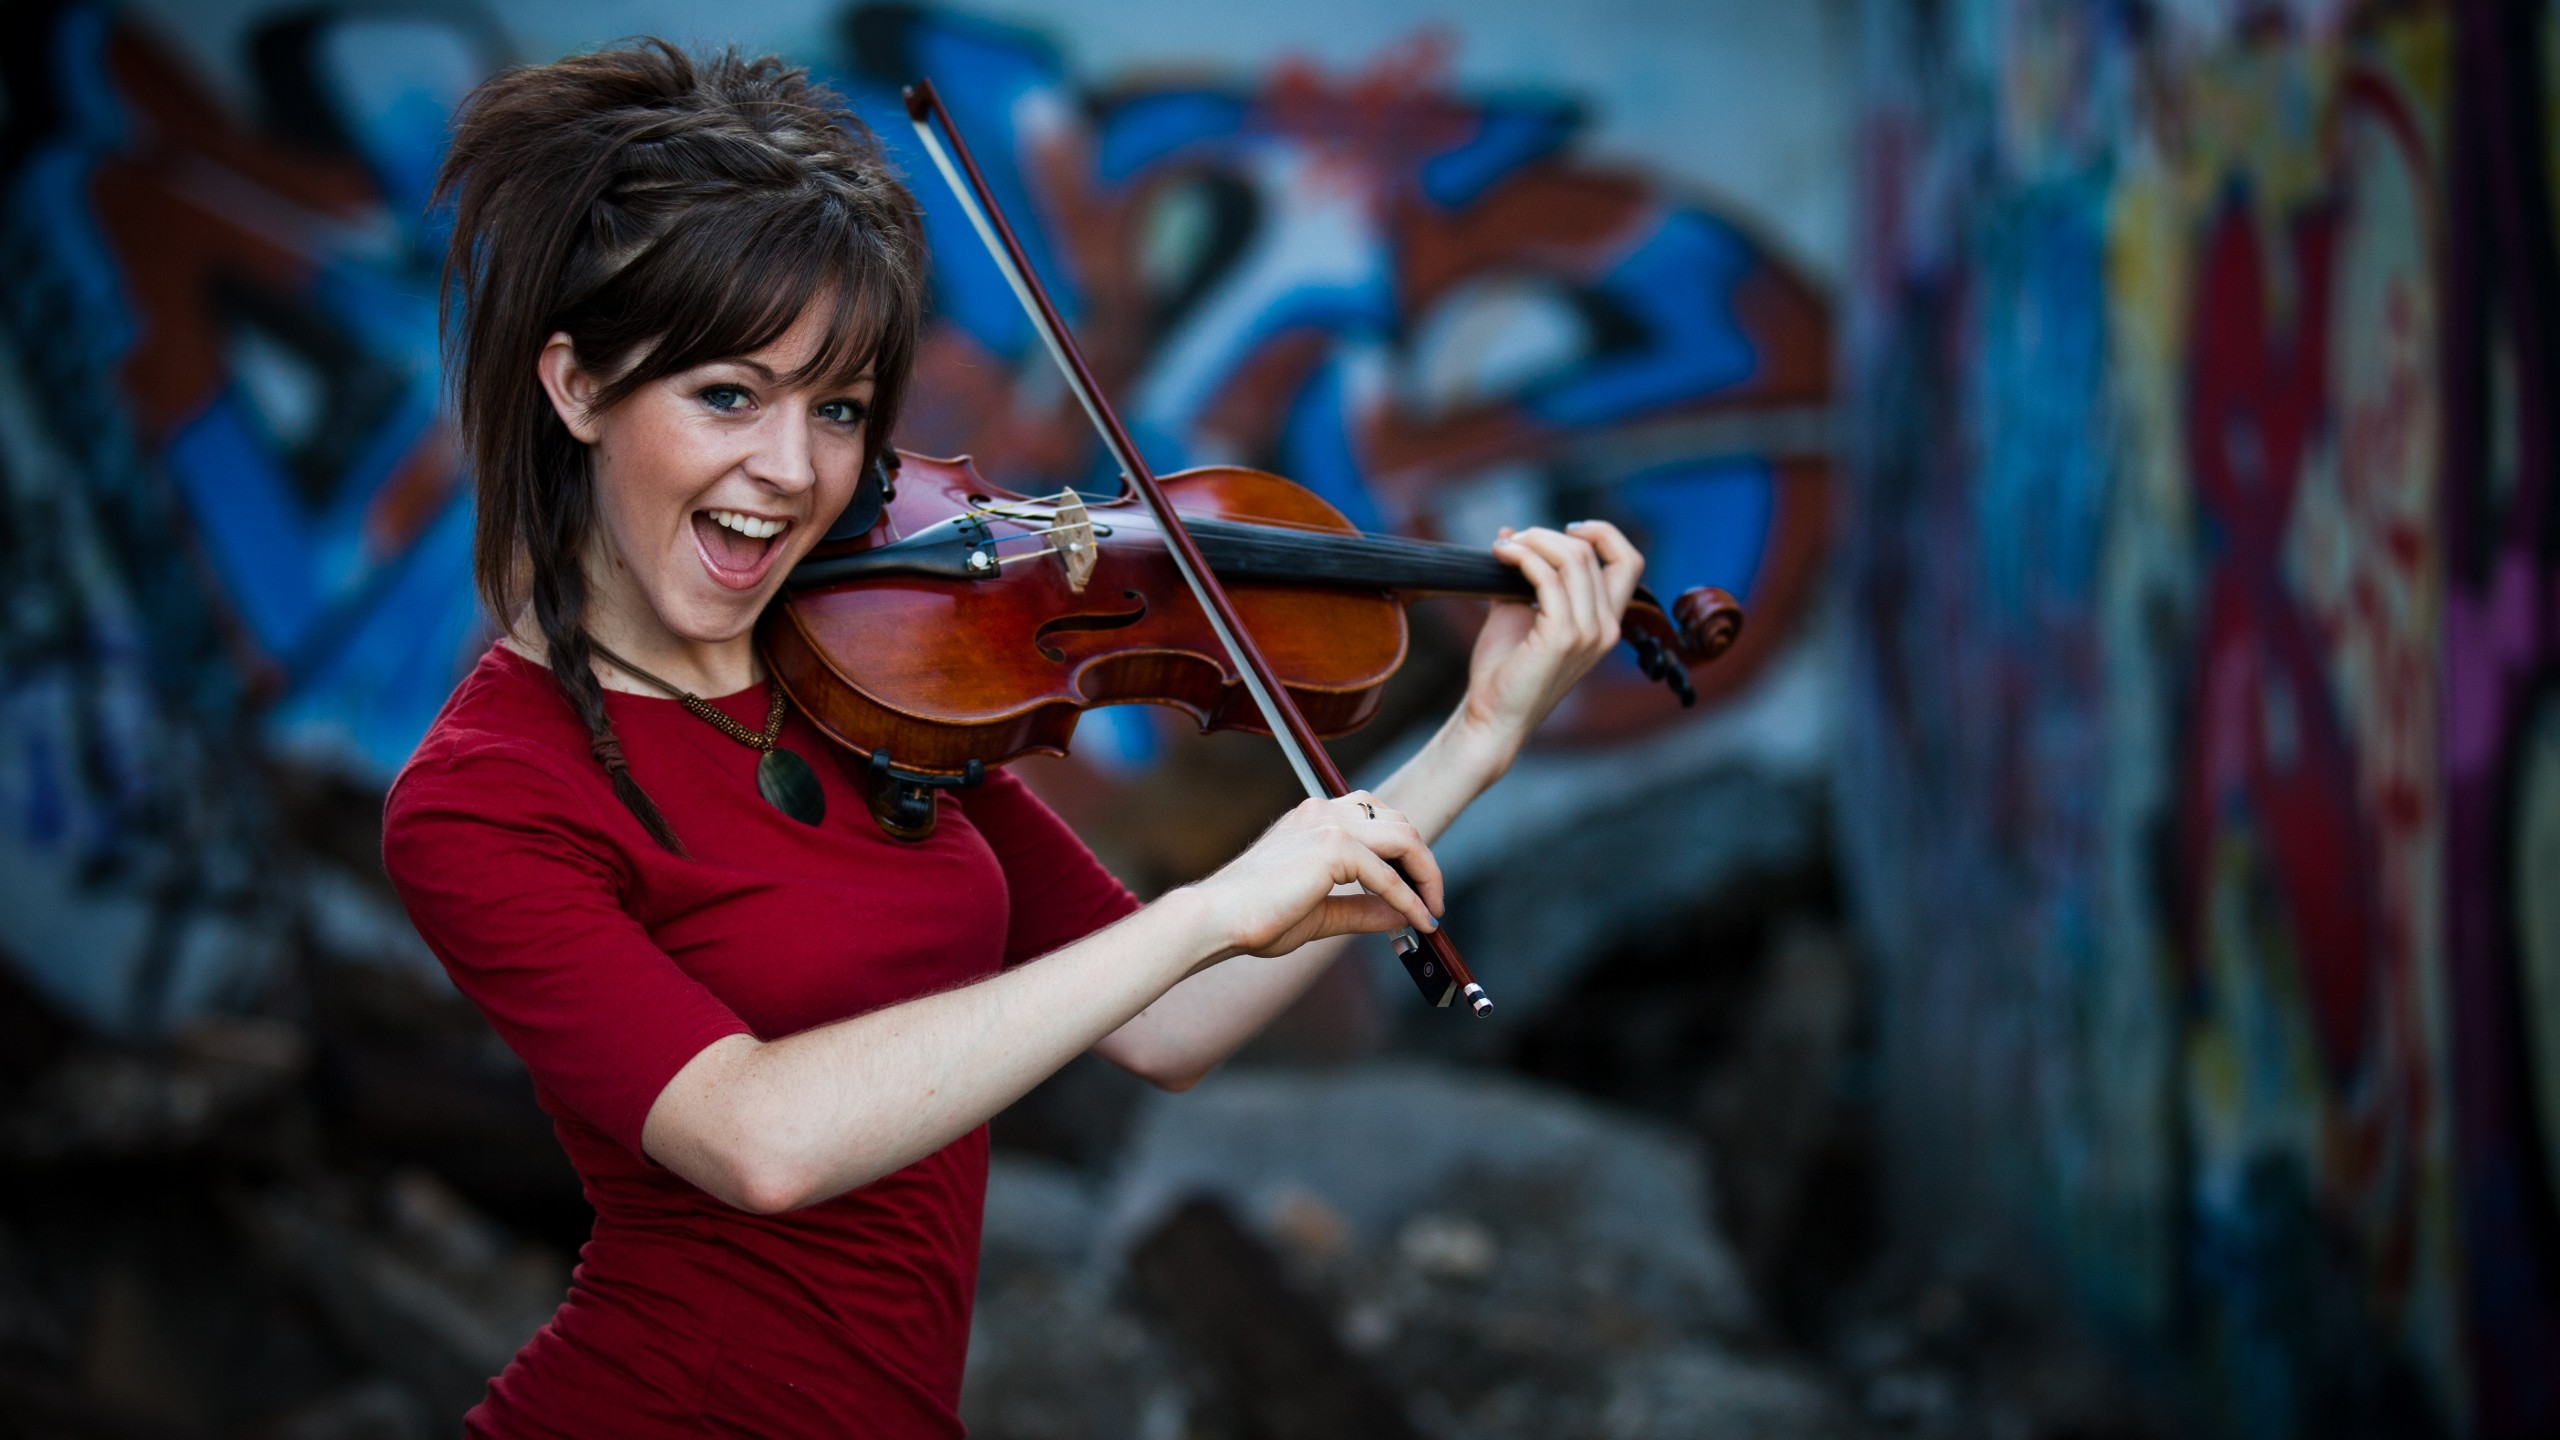 Lindsey Stirling Dub Step Violinist Wallpaper Lindsey